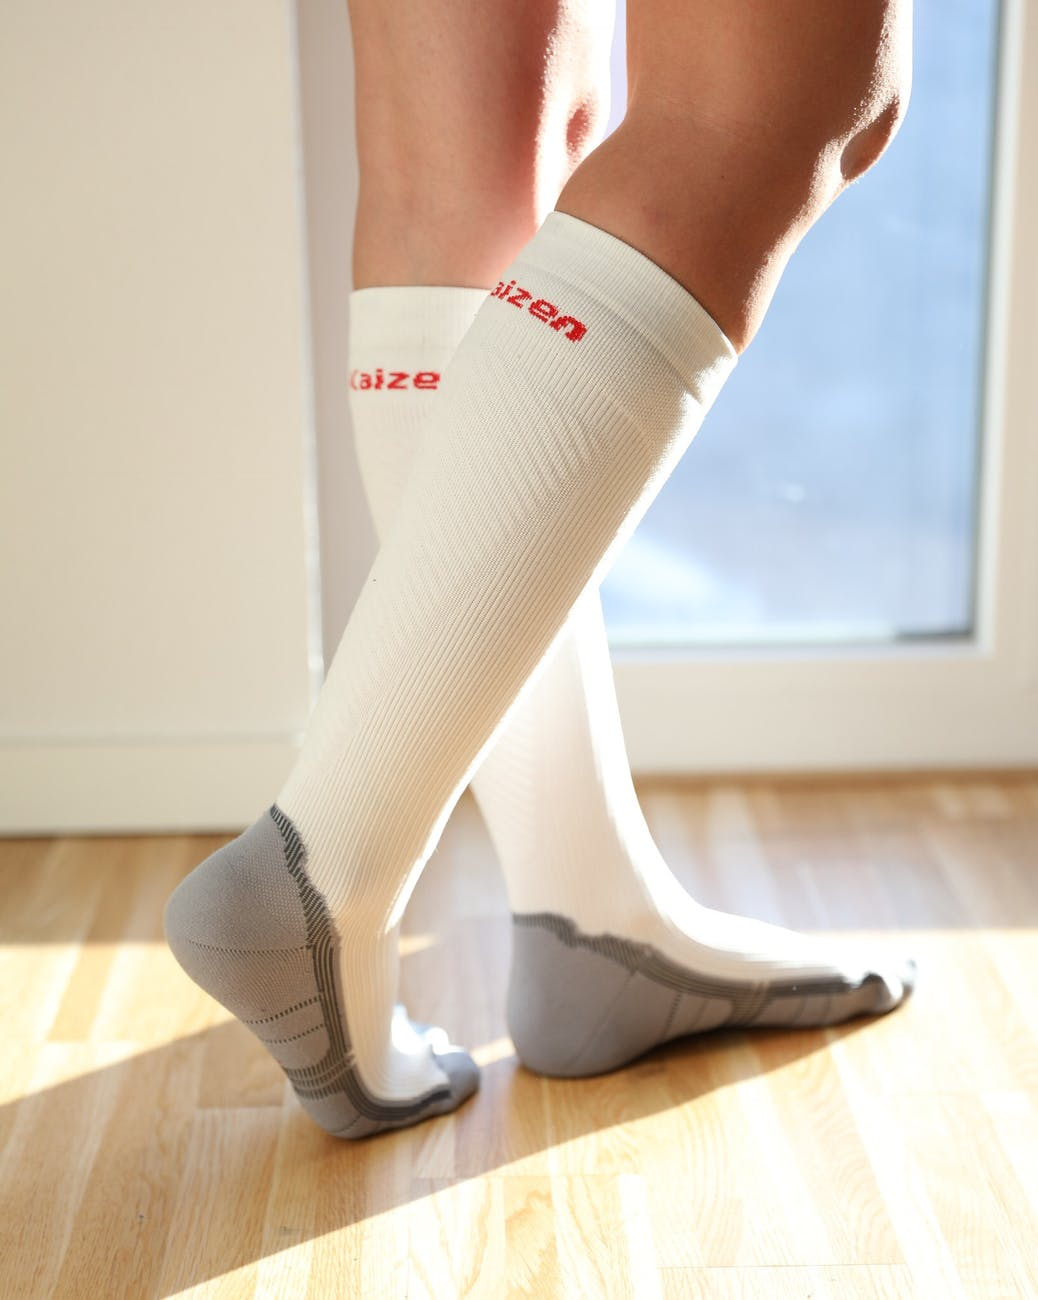 How Do TED Hose Differ From Compression Socks?